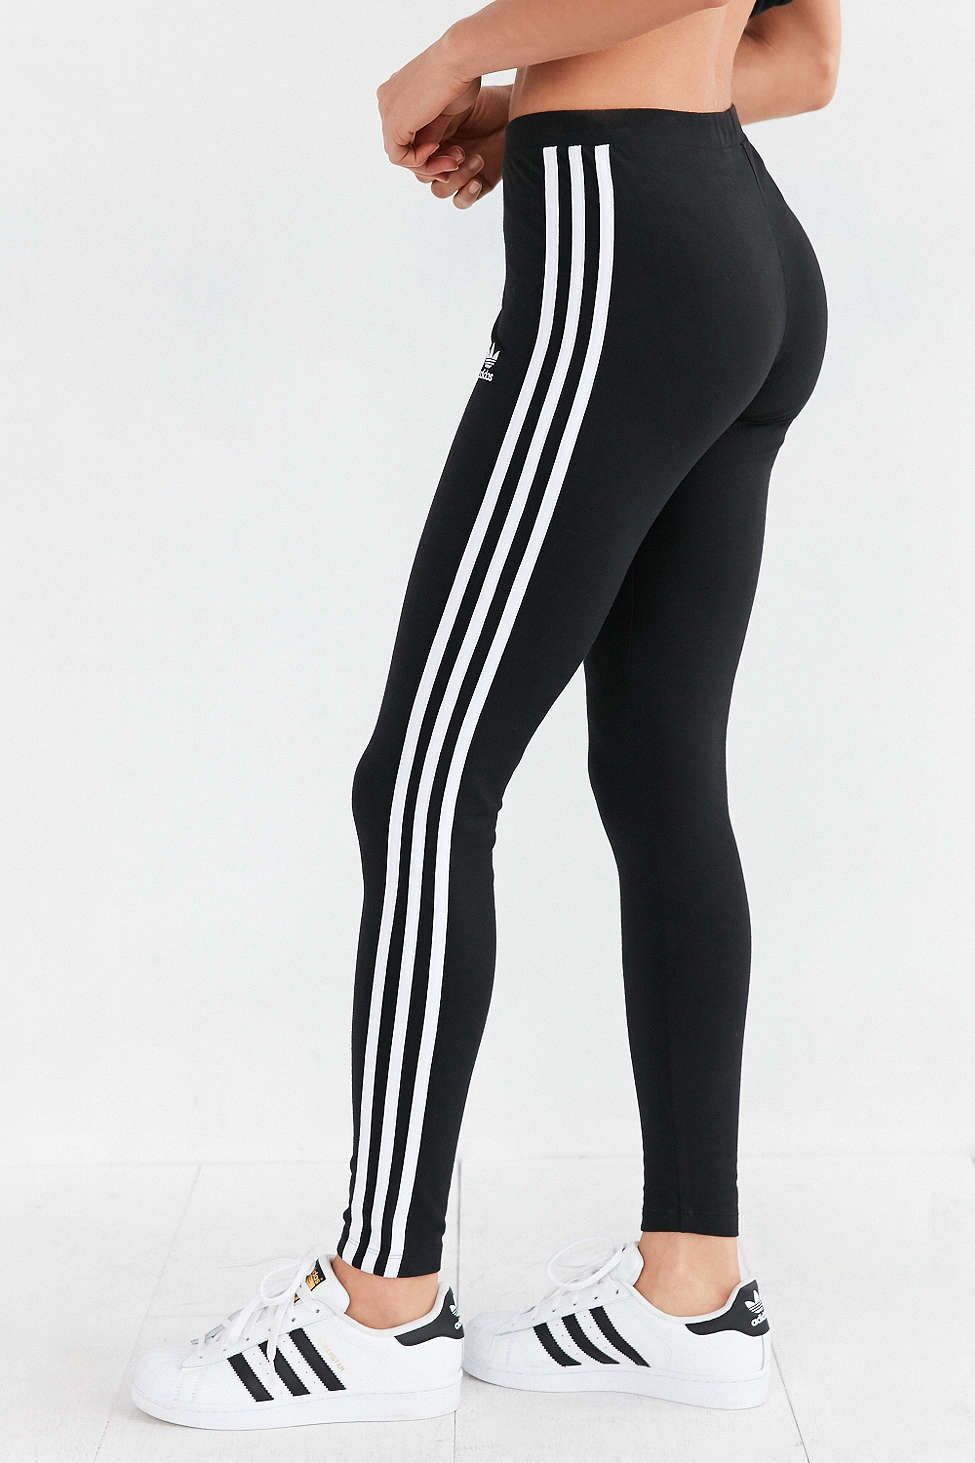 8b4a559293617 adidas Originals 3 Stripes Legging - Urban Outfitters Striped Pants,  Leggings, Stuff To Buy